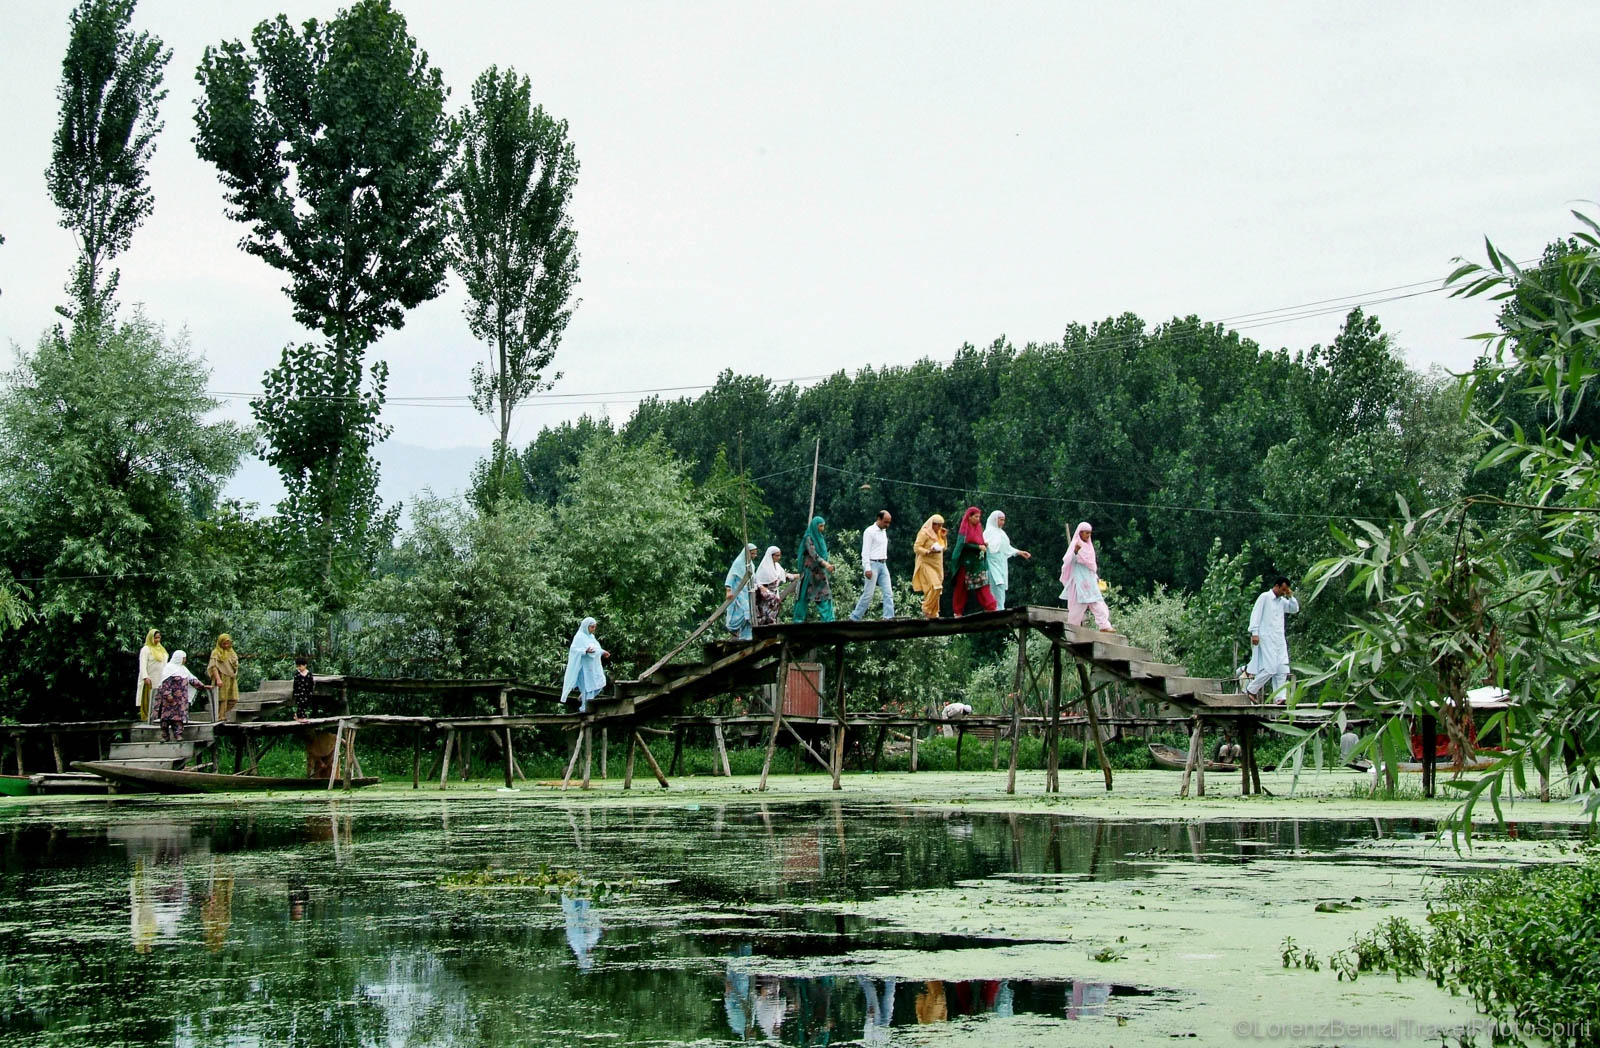 People crossing a small bridge over the canals in Srinagar, Kashmir, India